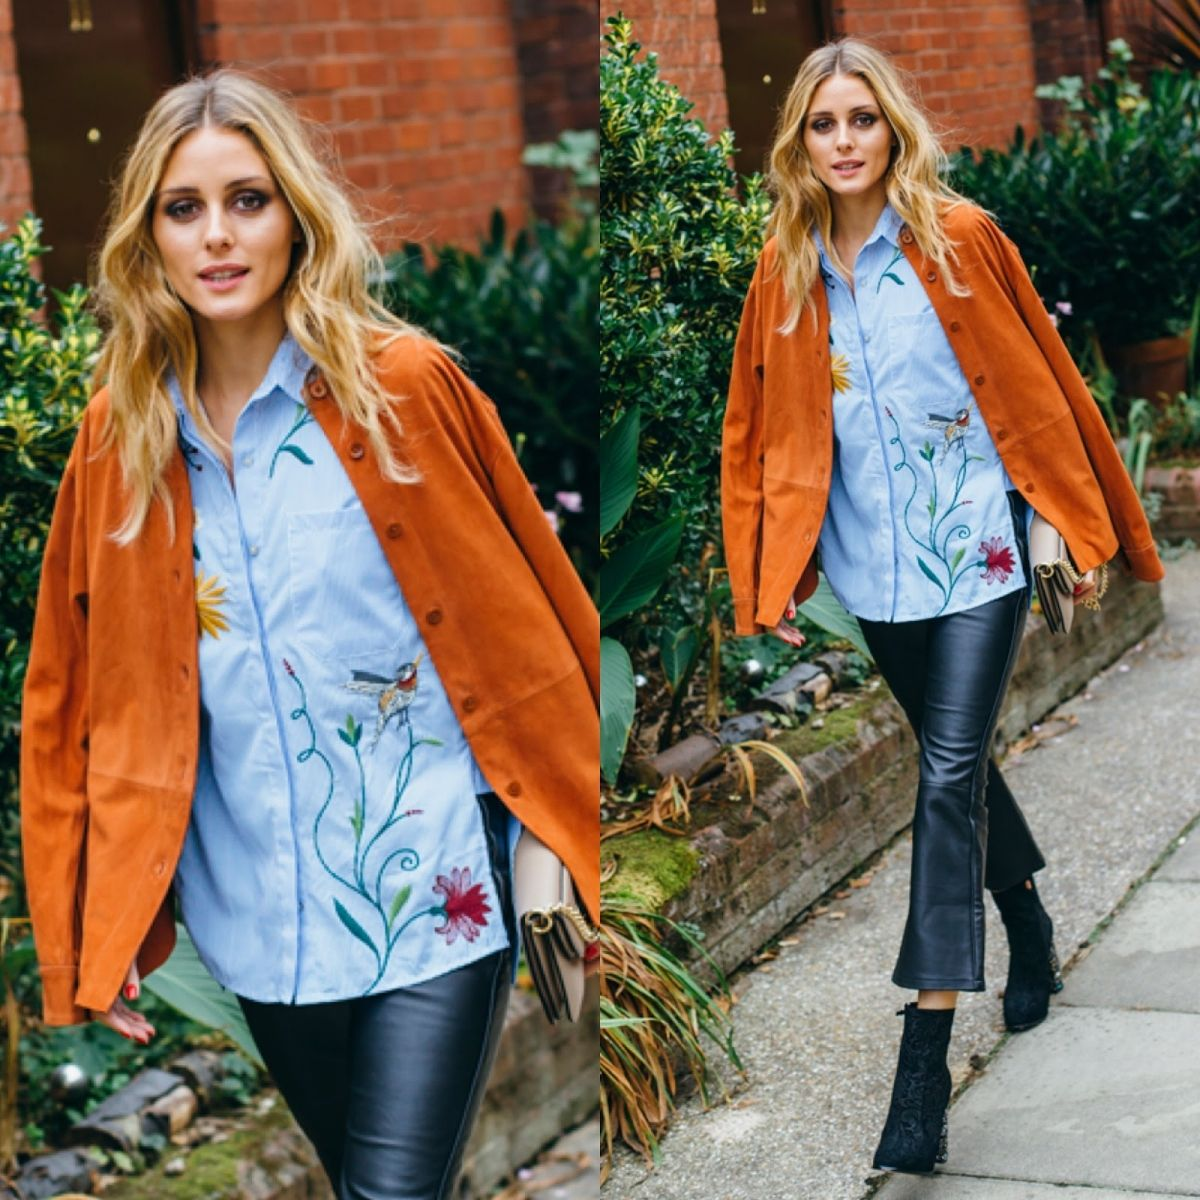 You won't believe where Olivia Palermo got her outfit from!